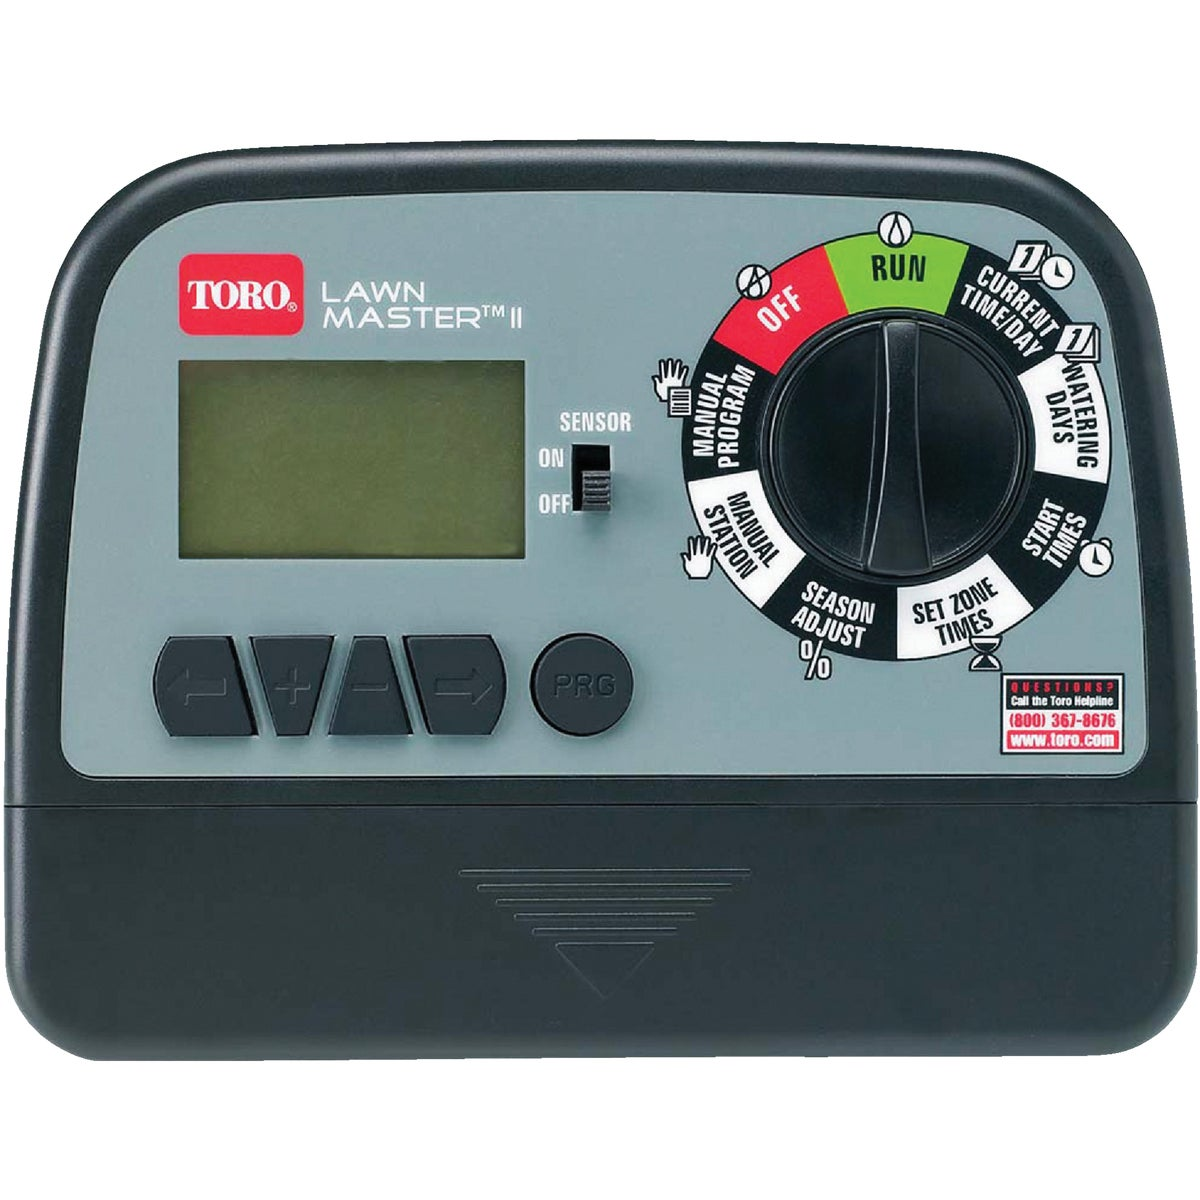 6 Zone Electronic Timer - 54060 by Toro/elect Appl Ordr